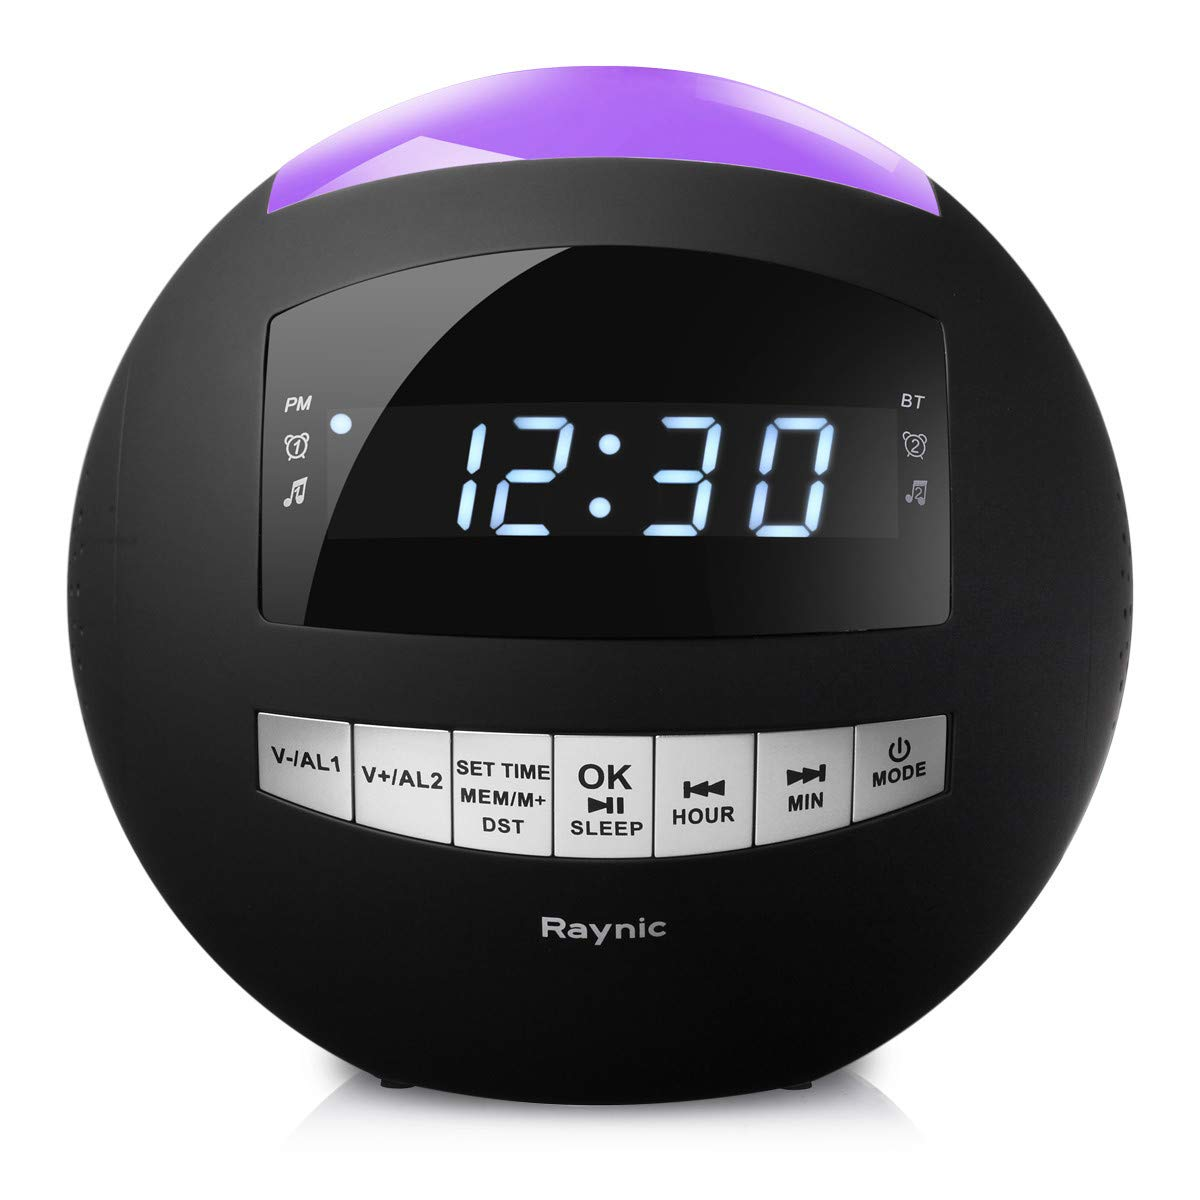 This clock radio with night light is nice